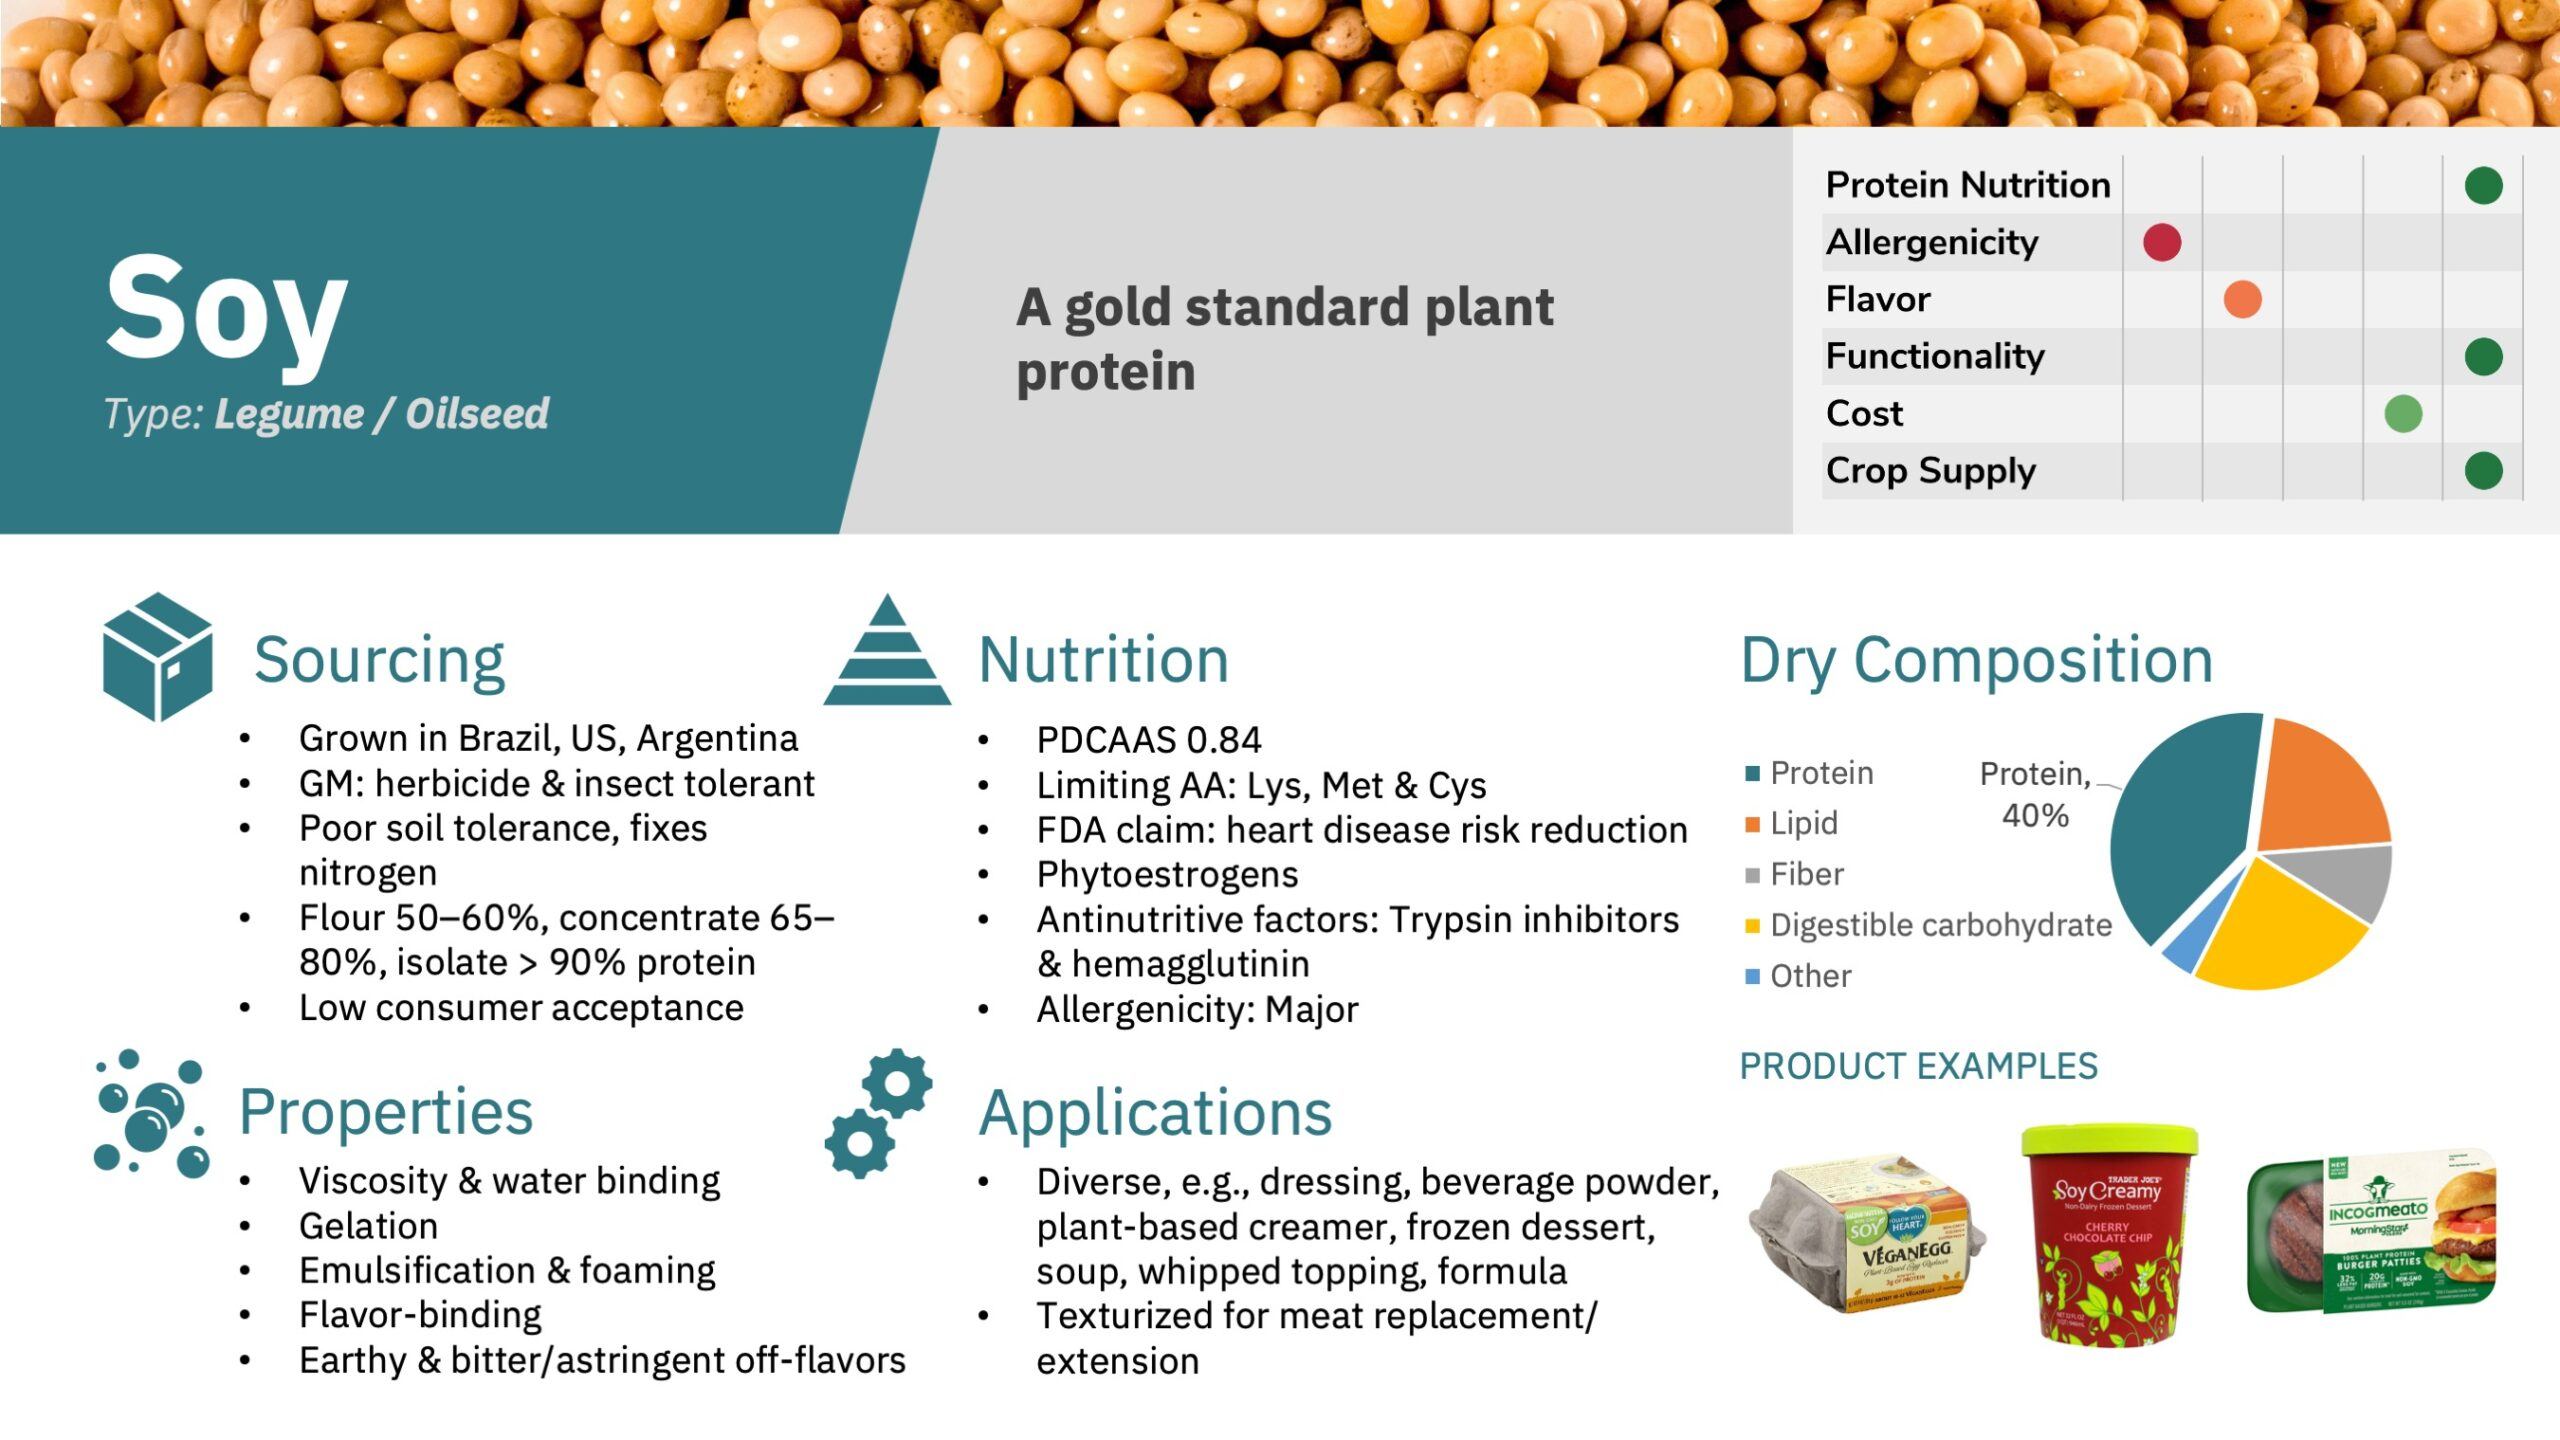 Preview slide showing profiles of 19 major protein sources including nutrition, functionality, price, and sourcing, and highlight an additional 25 emerging sources.